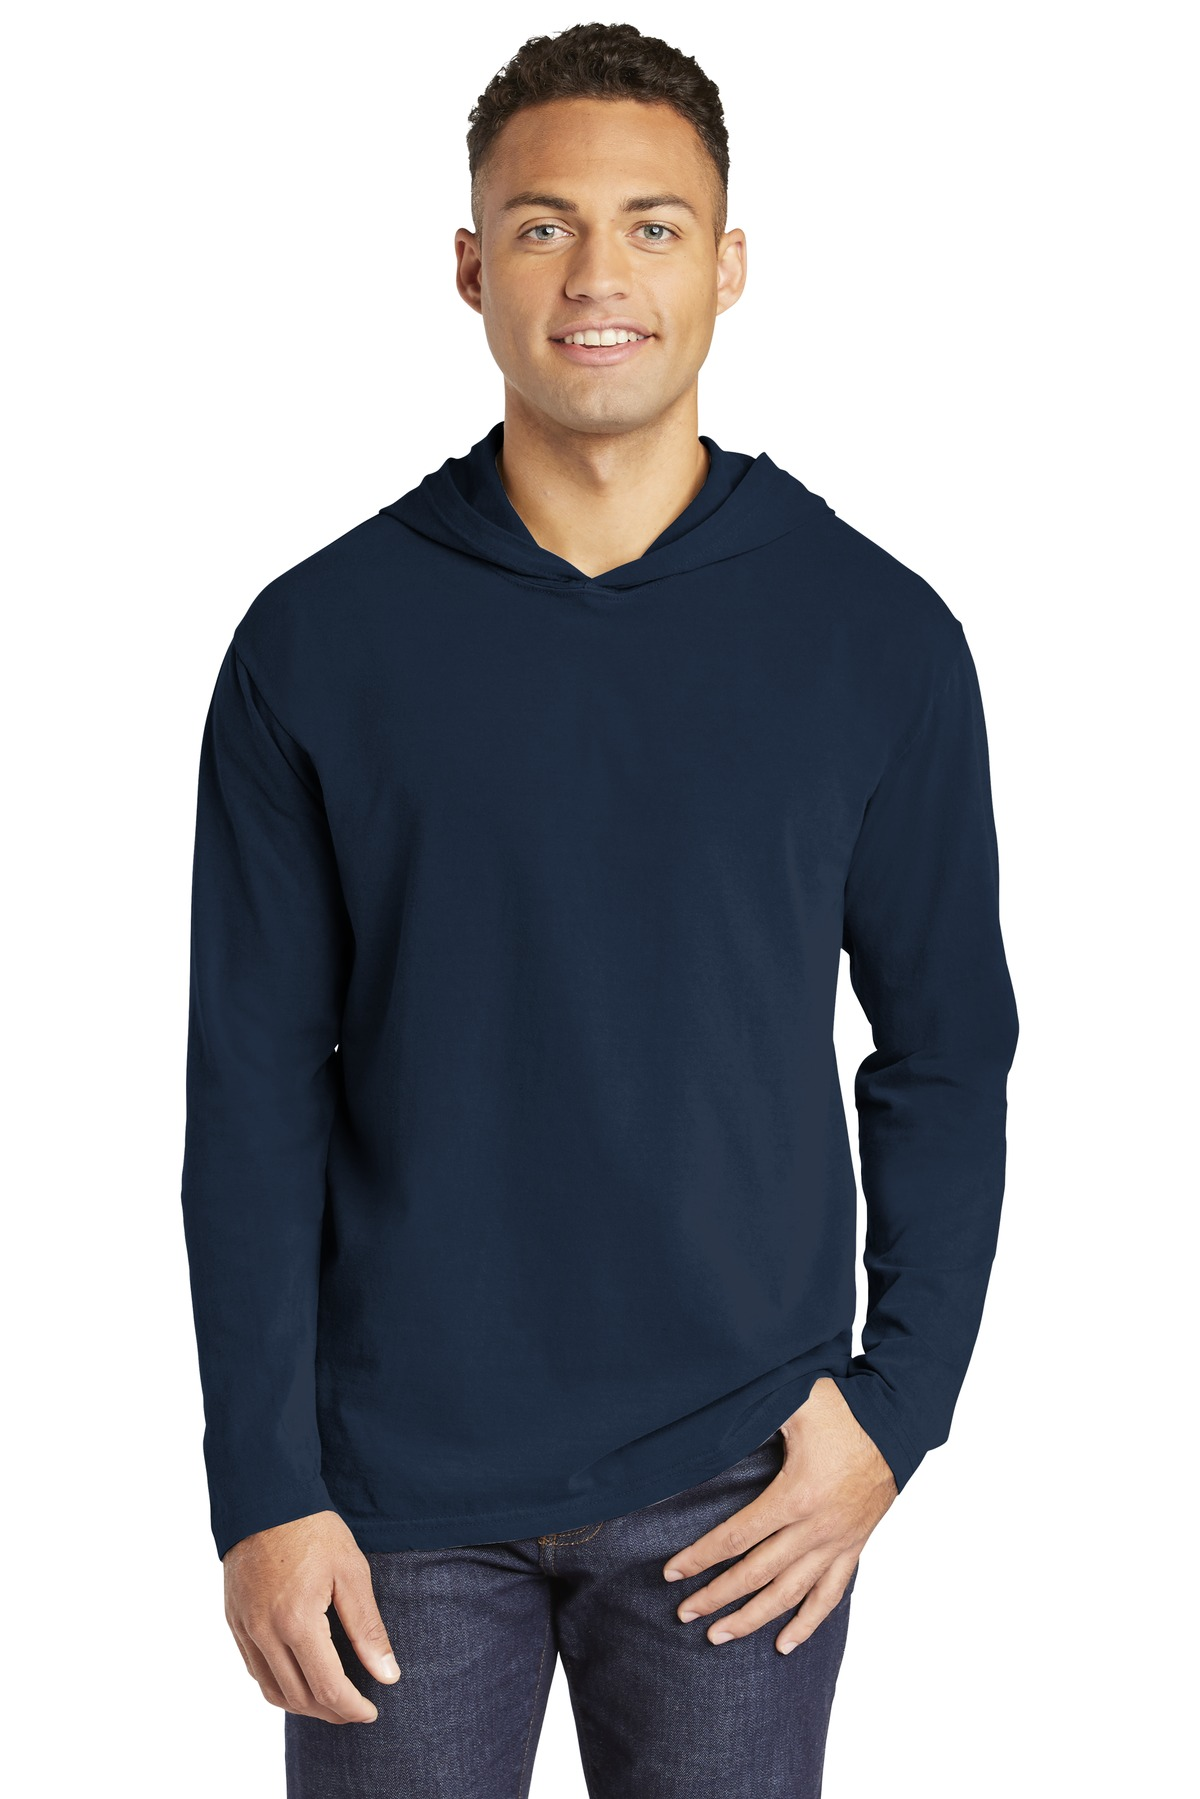 COMFORT COLORS Heavyweight Ring Spun Long Sleeve Hooded Tee. 4900